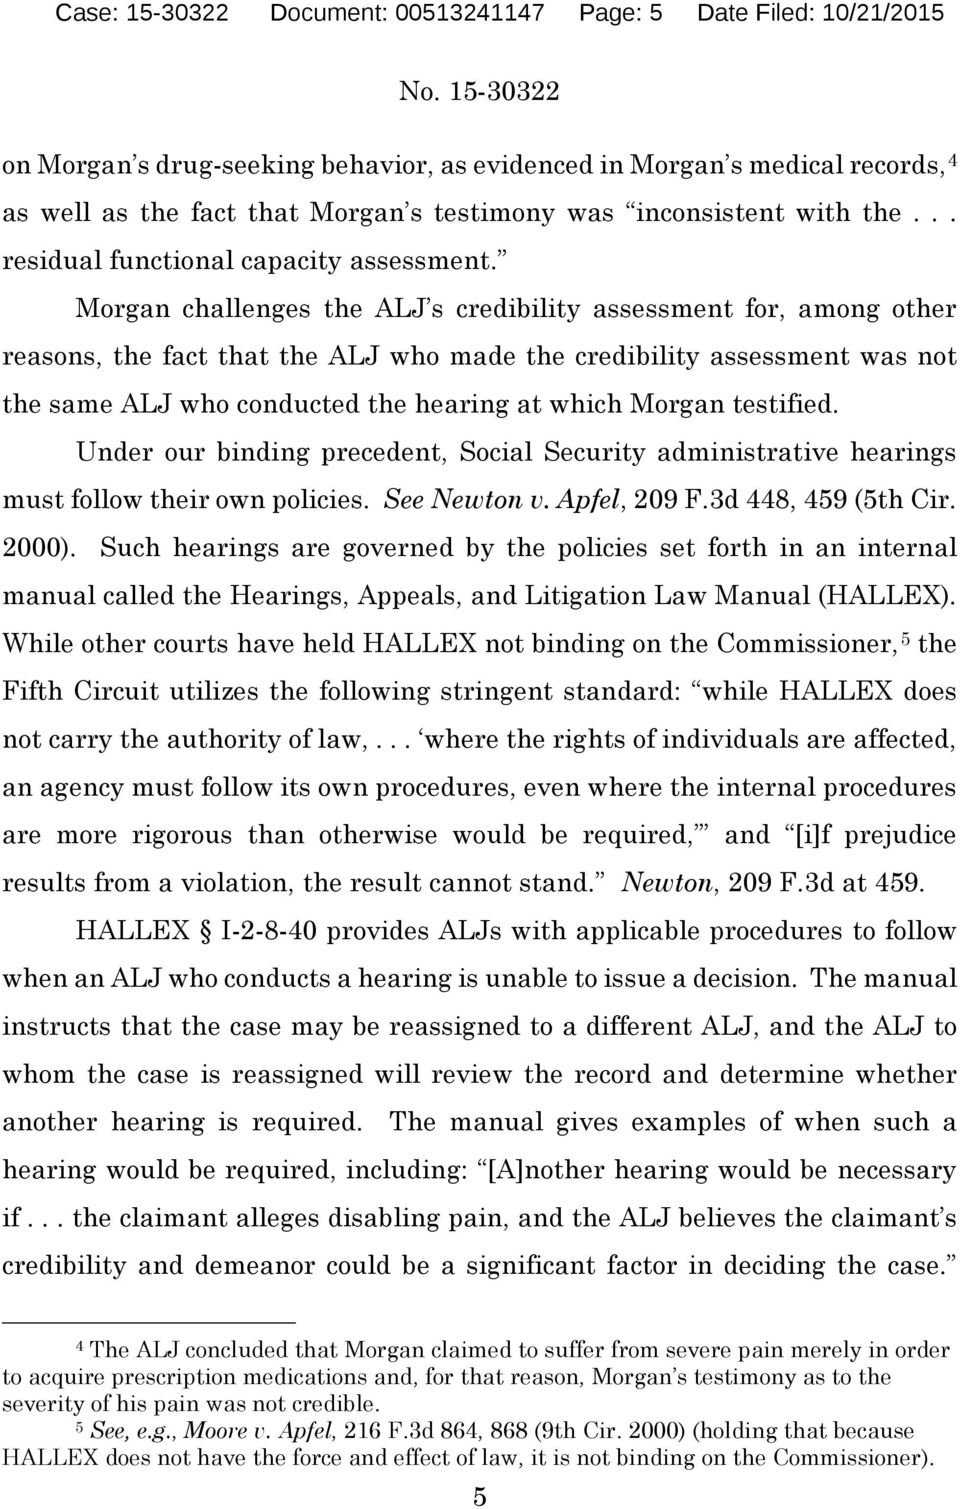 Morgan challenges the ALJ s credibility assessment for, among other reasons, the fact that the ALJ who made the credibility assessment was not the same ALJ who conducted the hearing at which Morgan